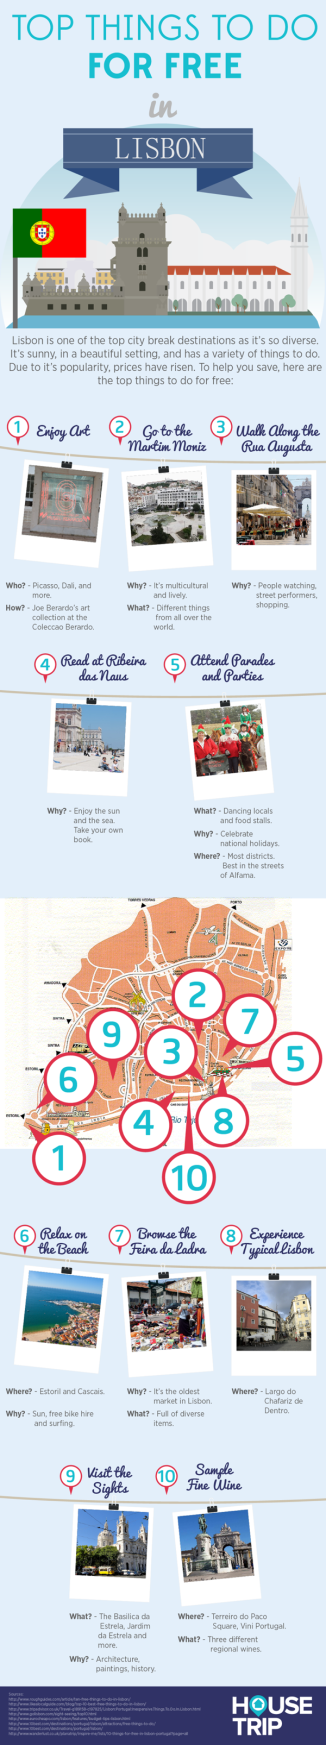 top-things-to-do-for-free-in-lisbon